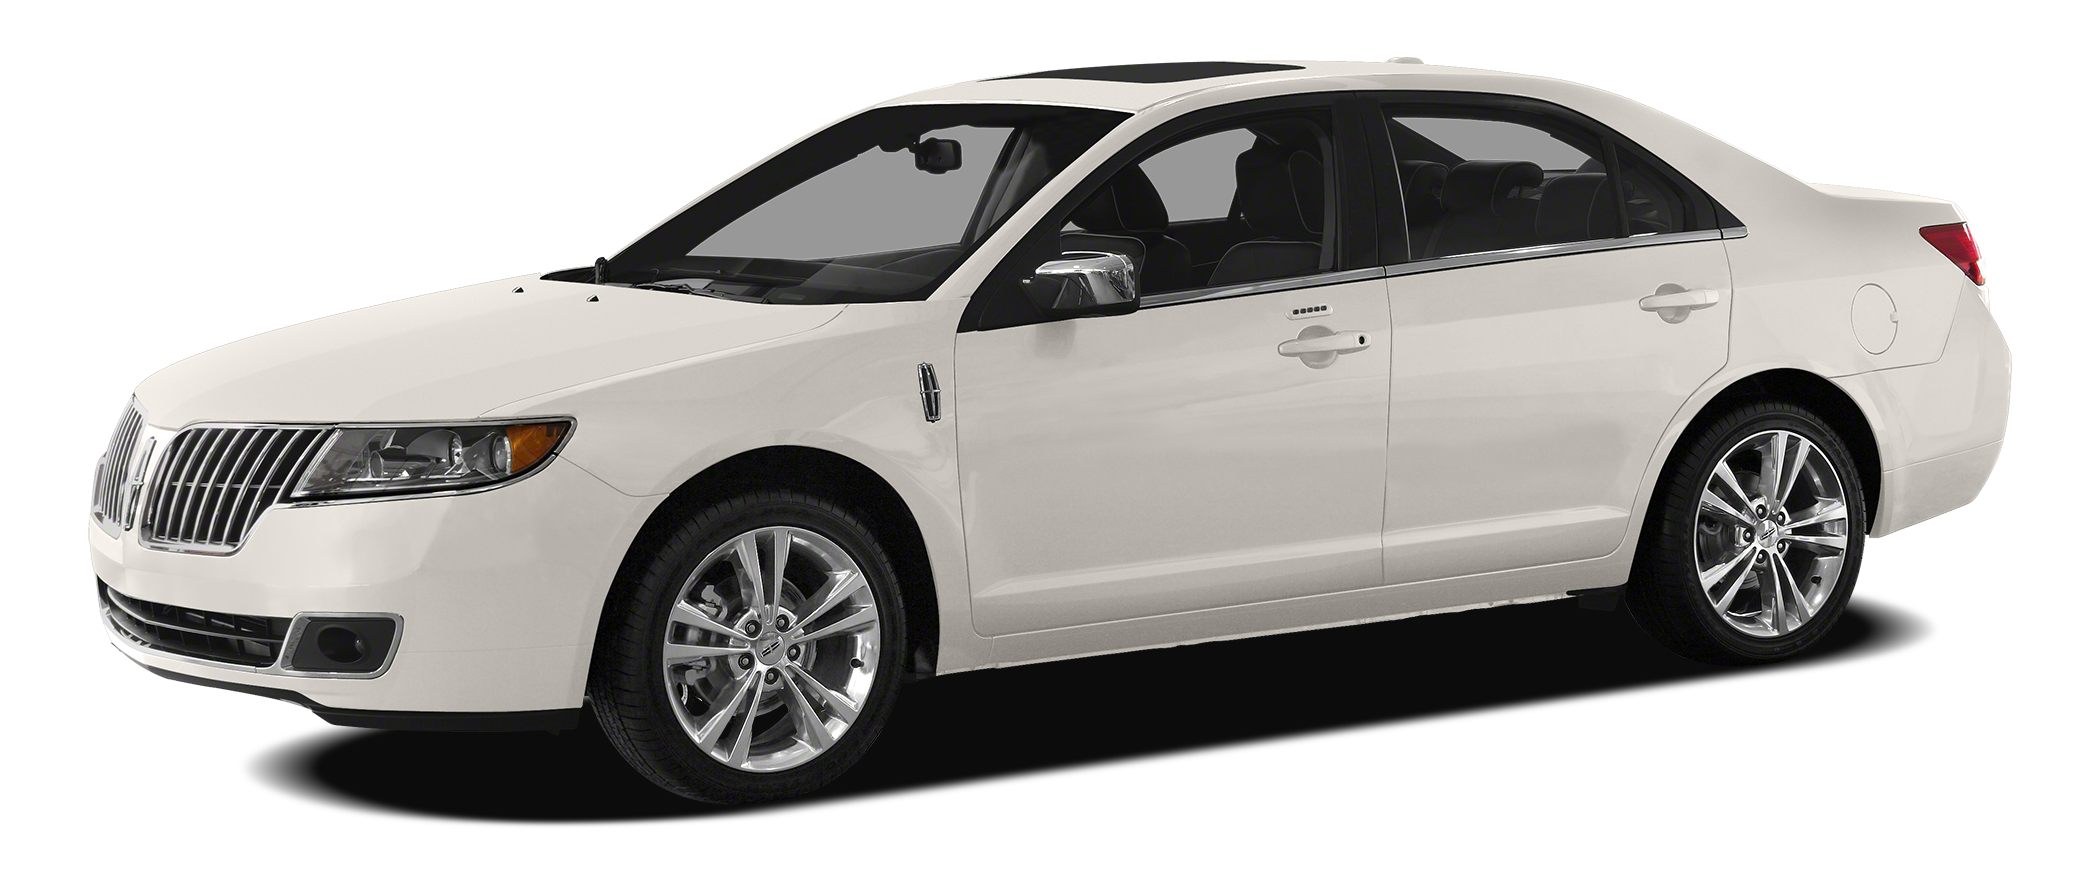 2011 Lincoln MKZ Base CARFAX One-Owner White Platinum Metallic Tri-Coat 2011 Lincoln MKZ FWD 6-Sp